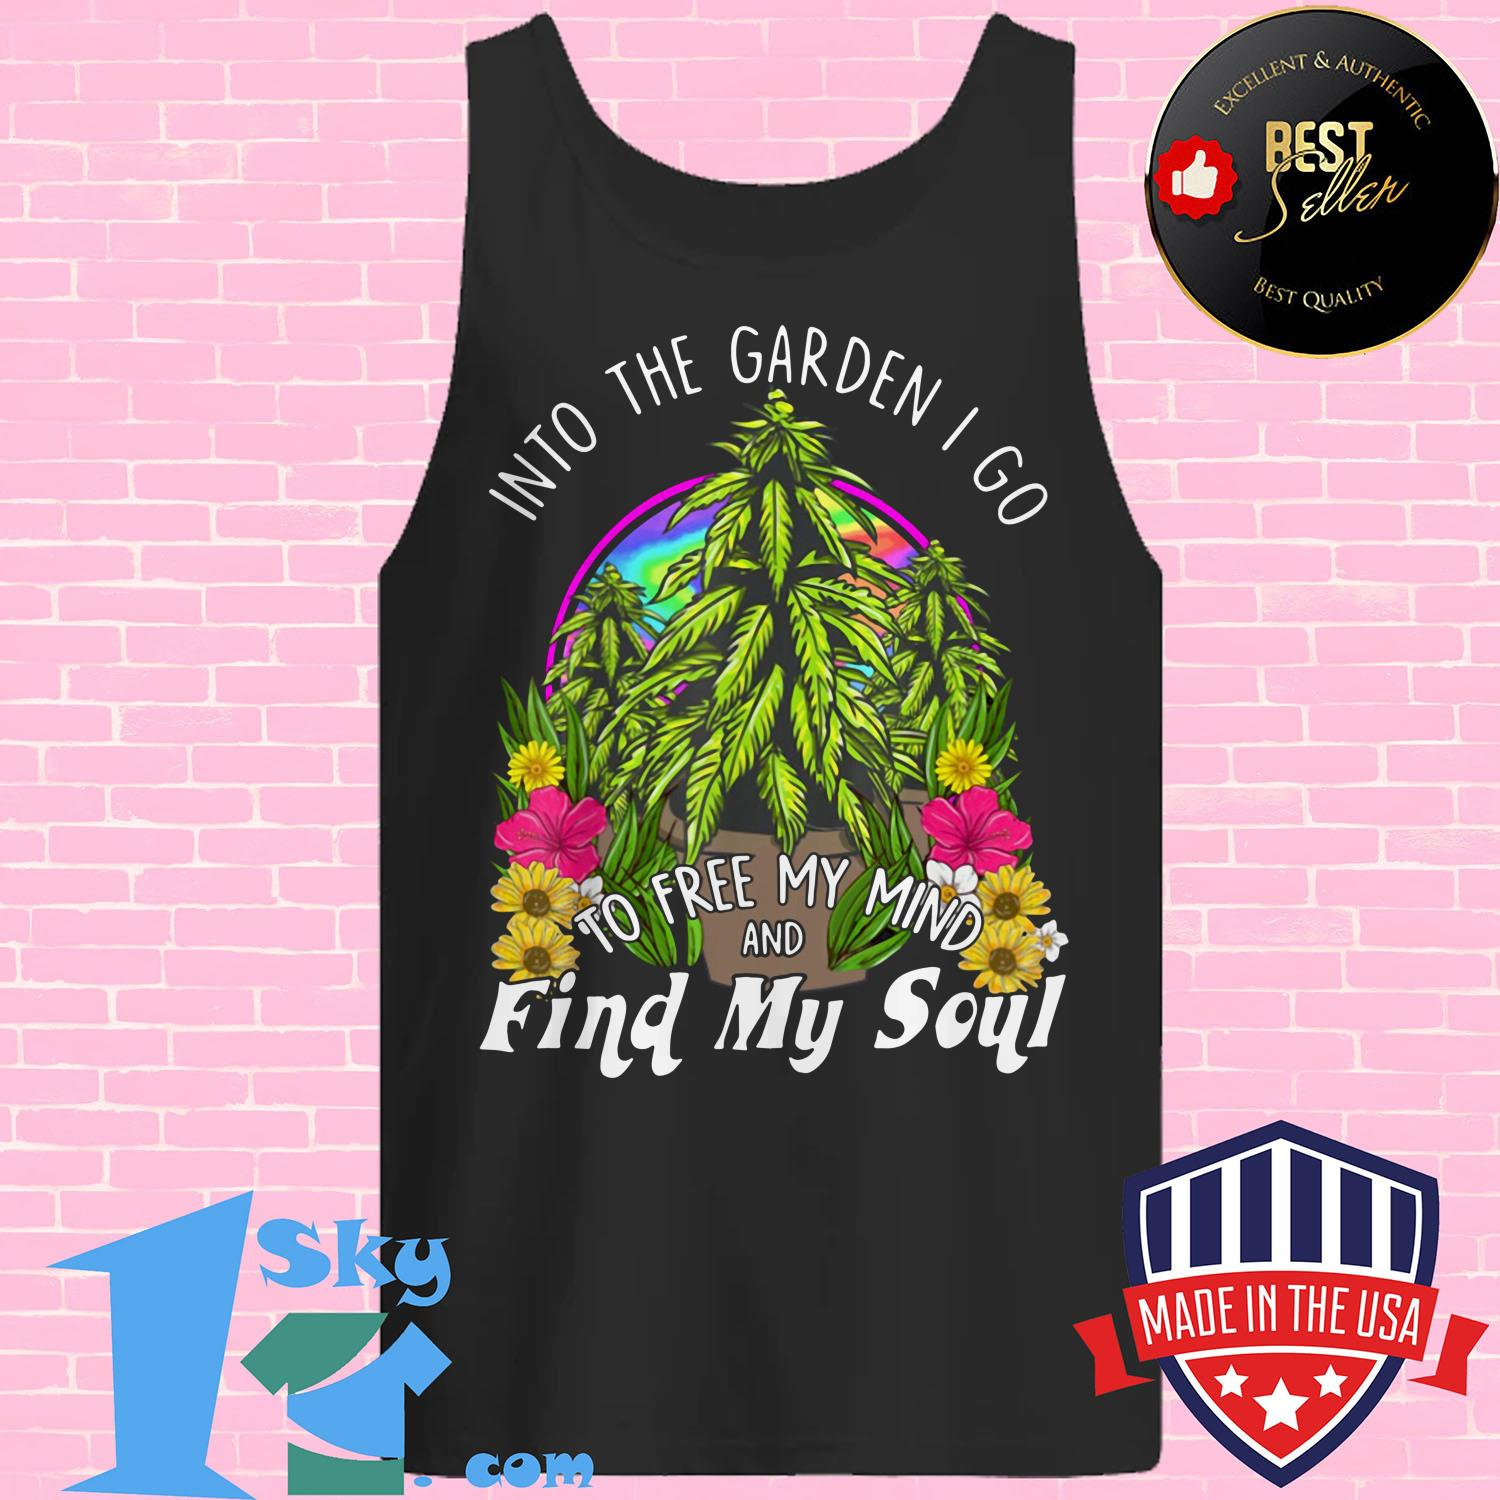 into the garden i go to free my mind and find my soul tank top - Into The Garden I Go To Free My Mind And Find My Soul shirt